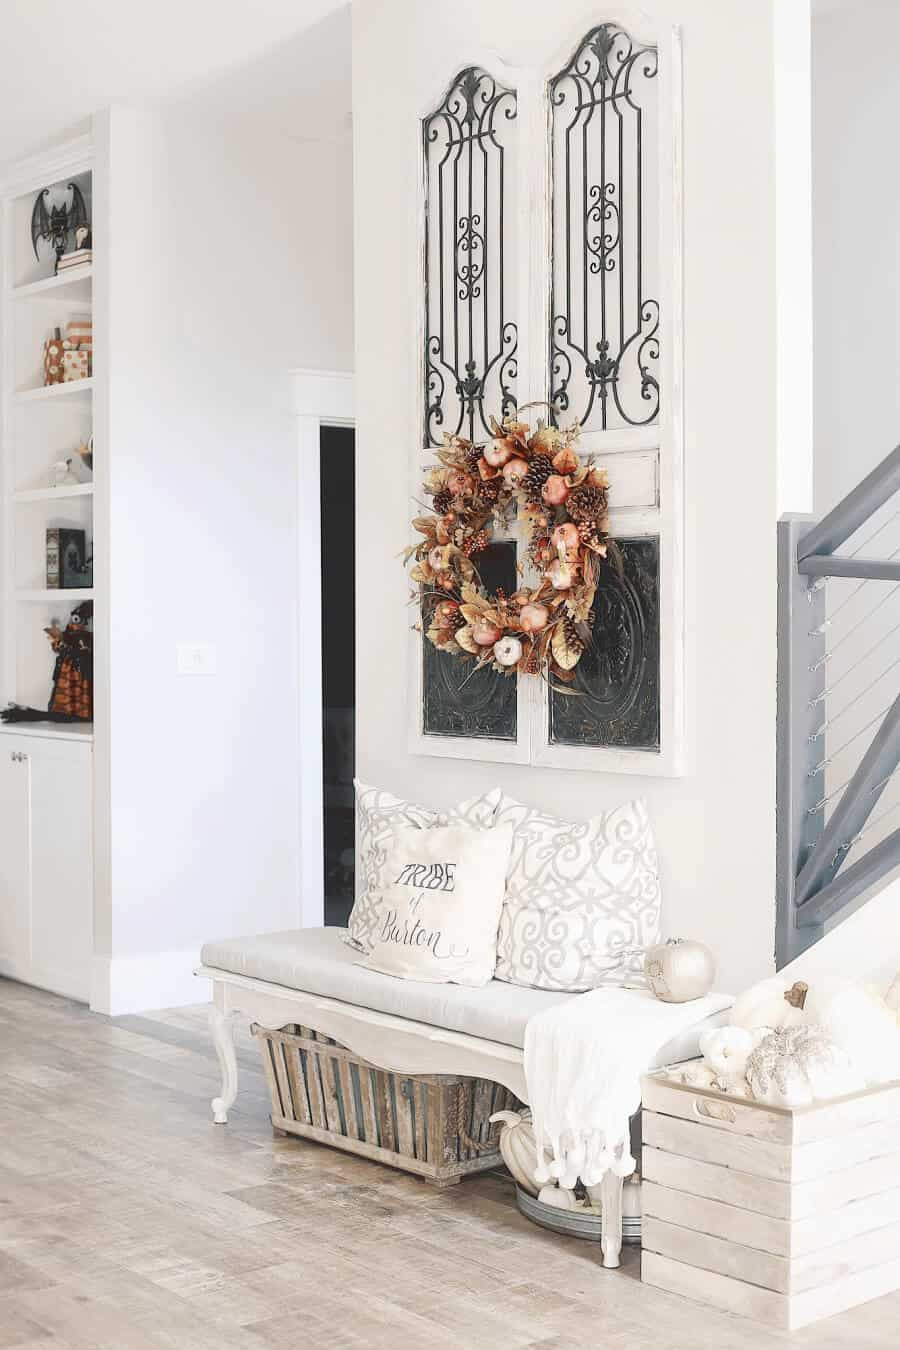 Fall decor with a wreath in the foyer.